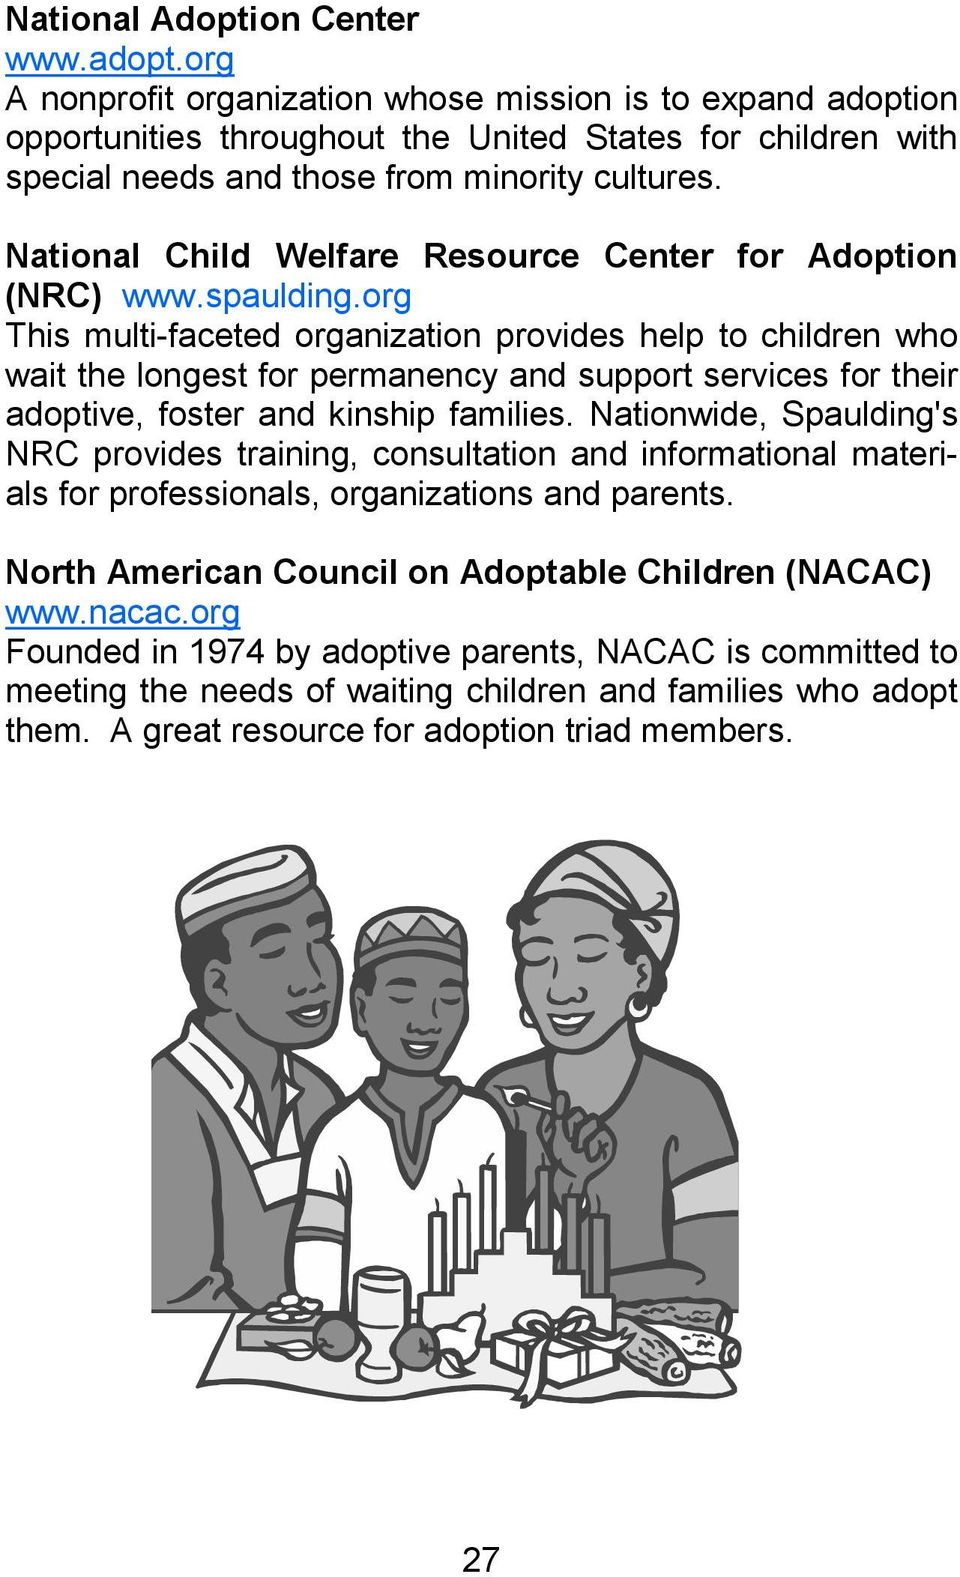 National Child Welfare Resource Center for Adoption (NRC) www.spaulding.